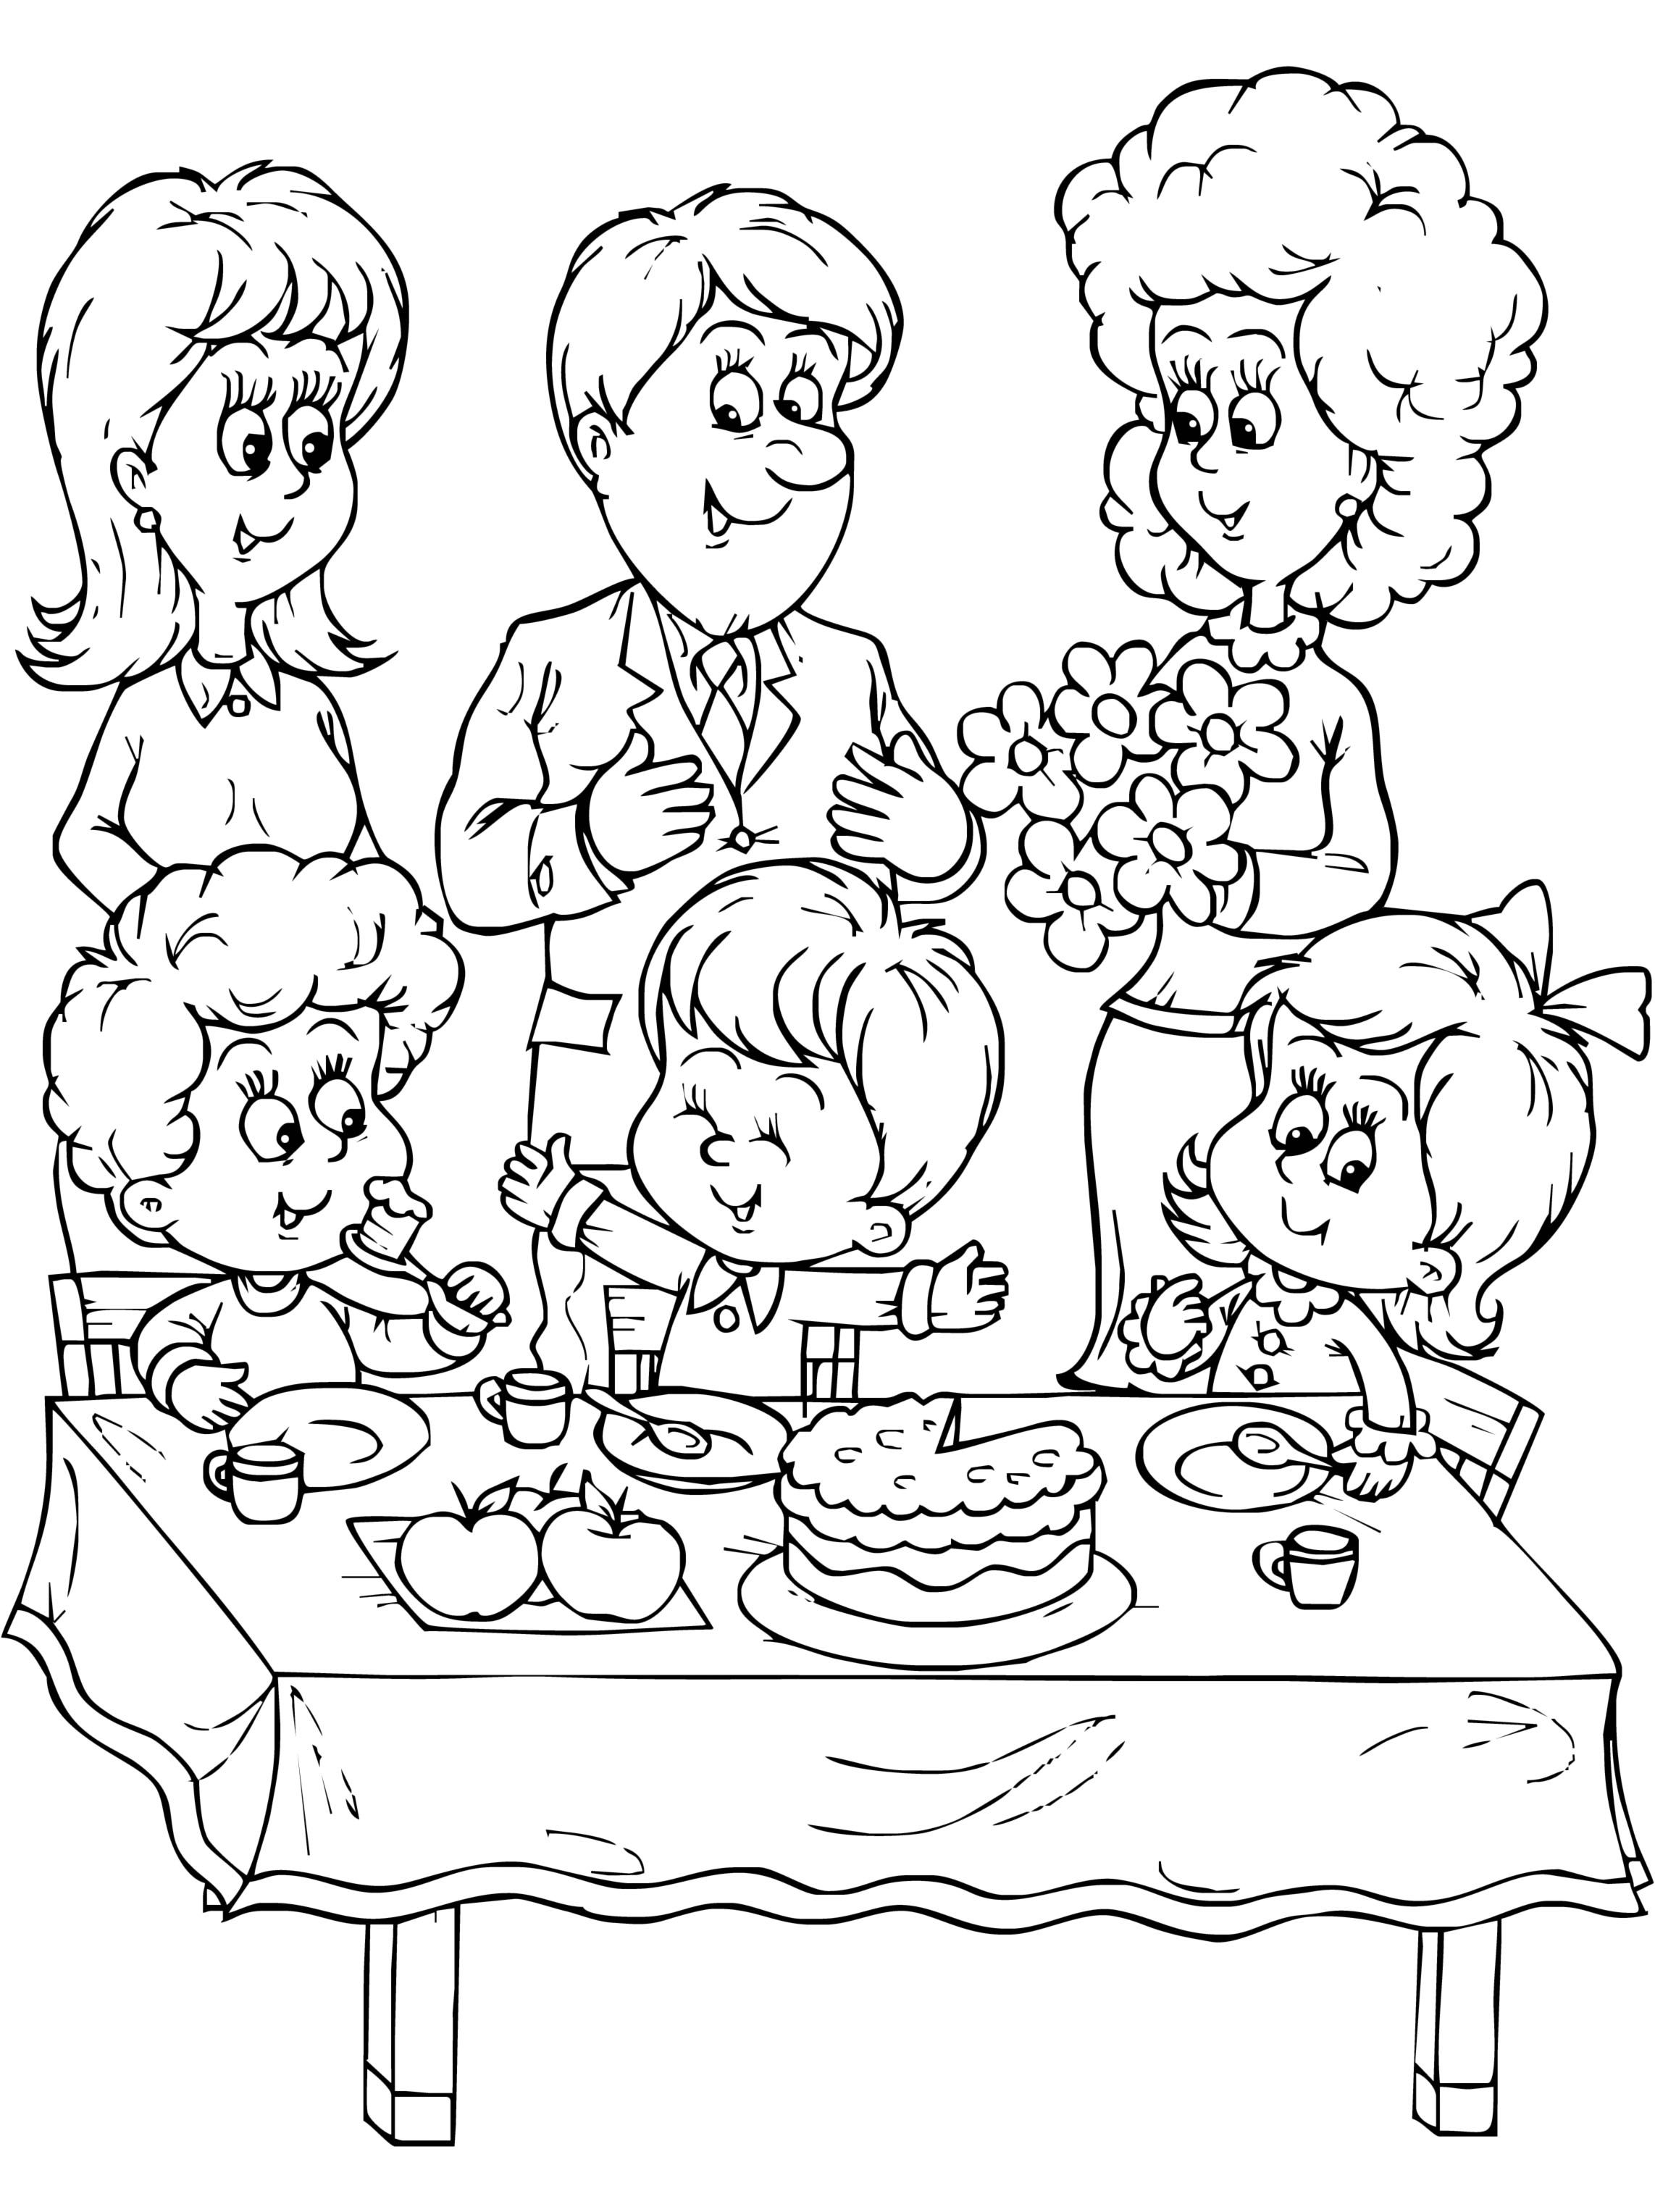 Coloring Pages Of Family